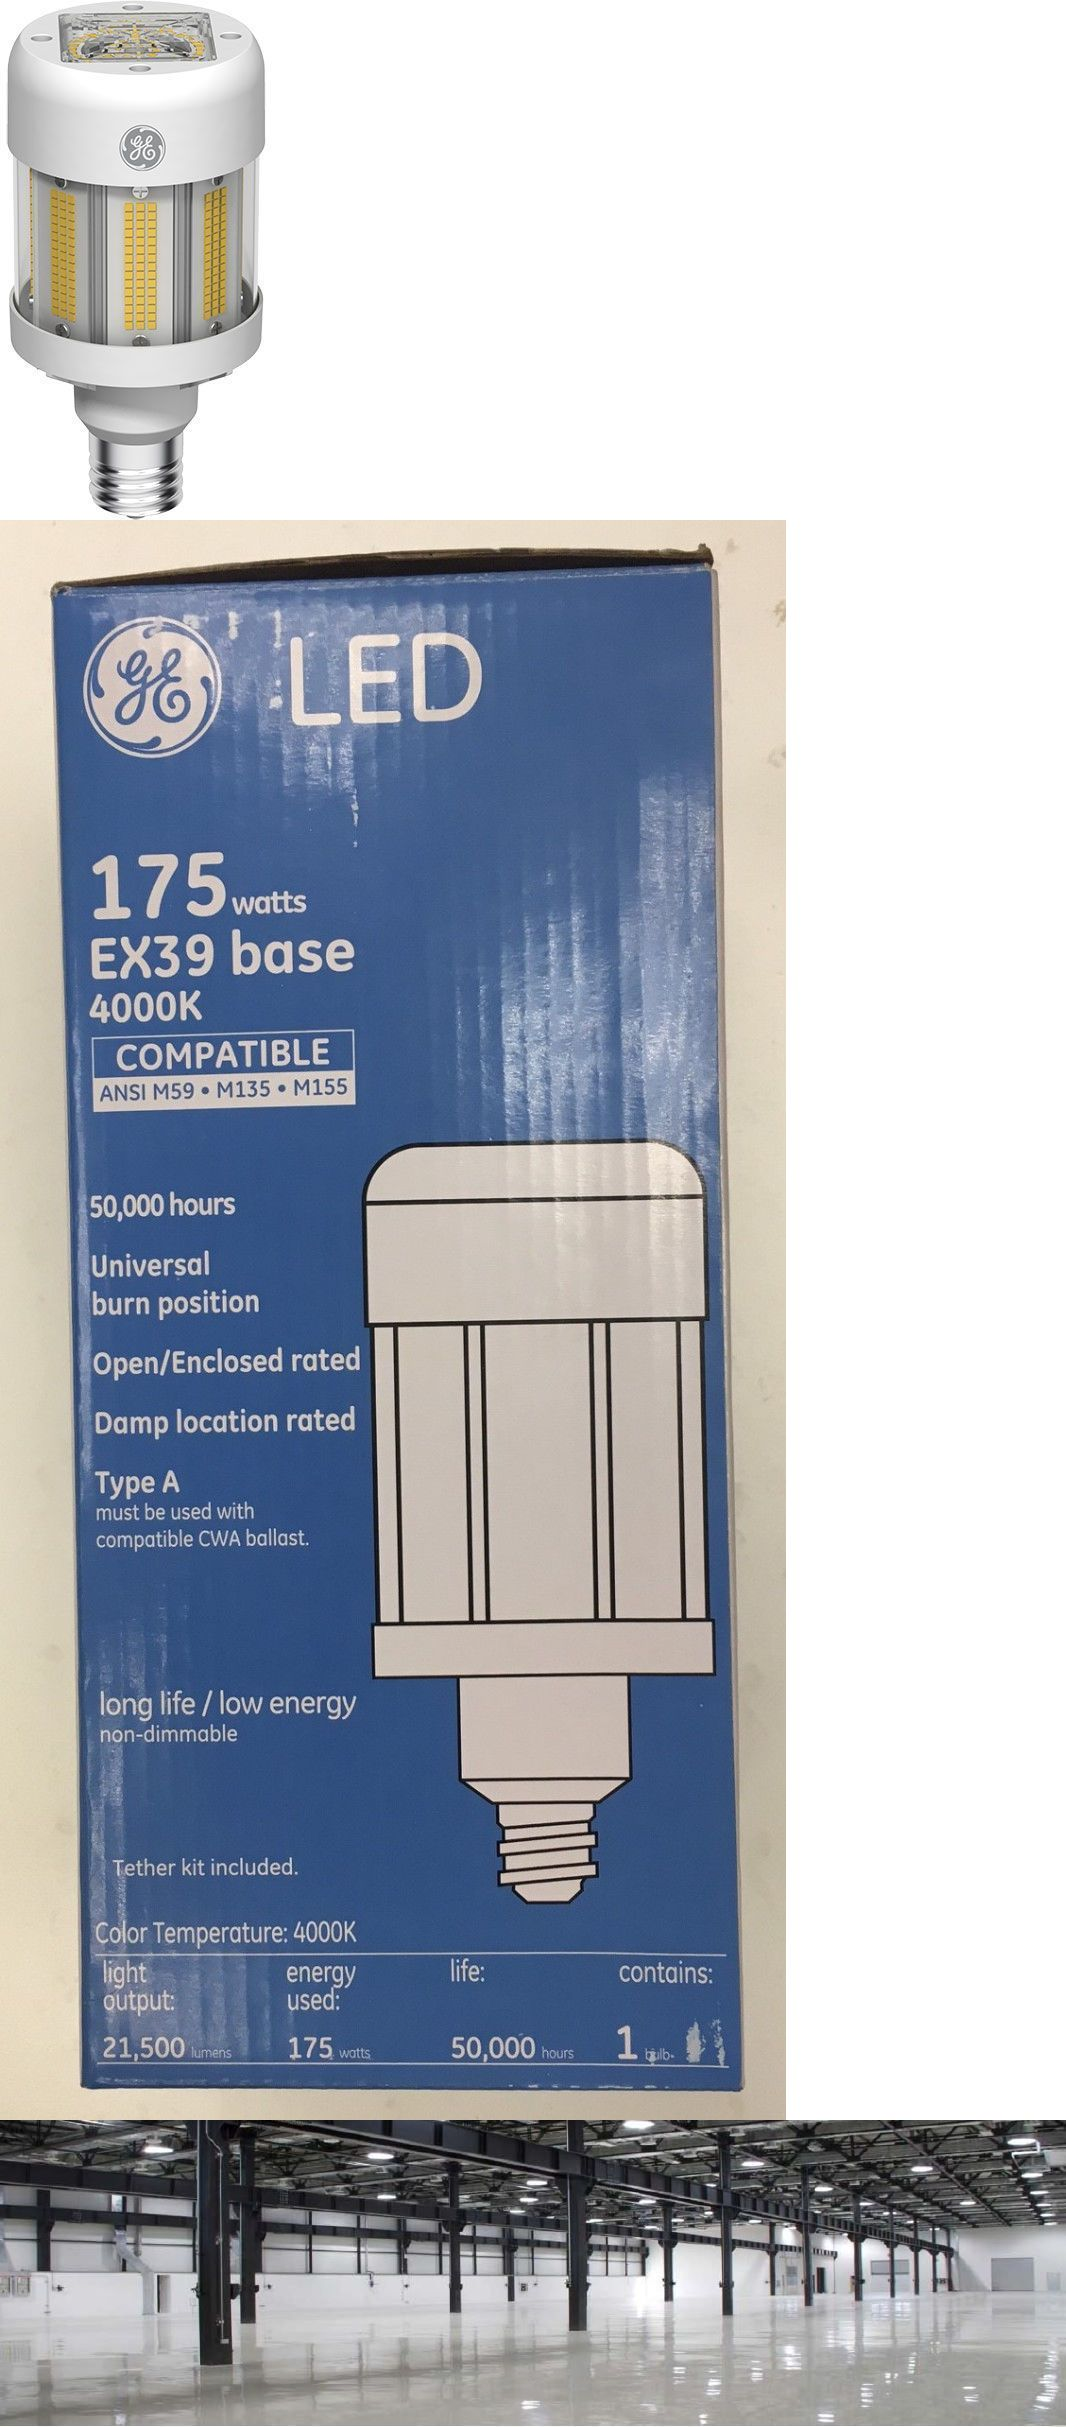 lighting protected lamps c discharge metal ew lamp quartz prof philips intensity halide tubes switch wid and high conventional na start large product bu